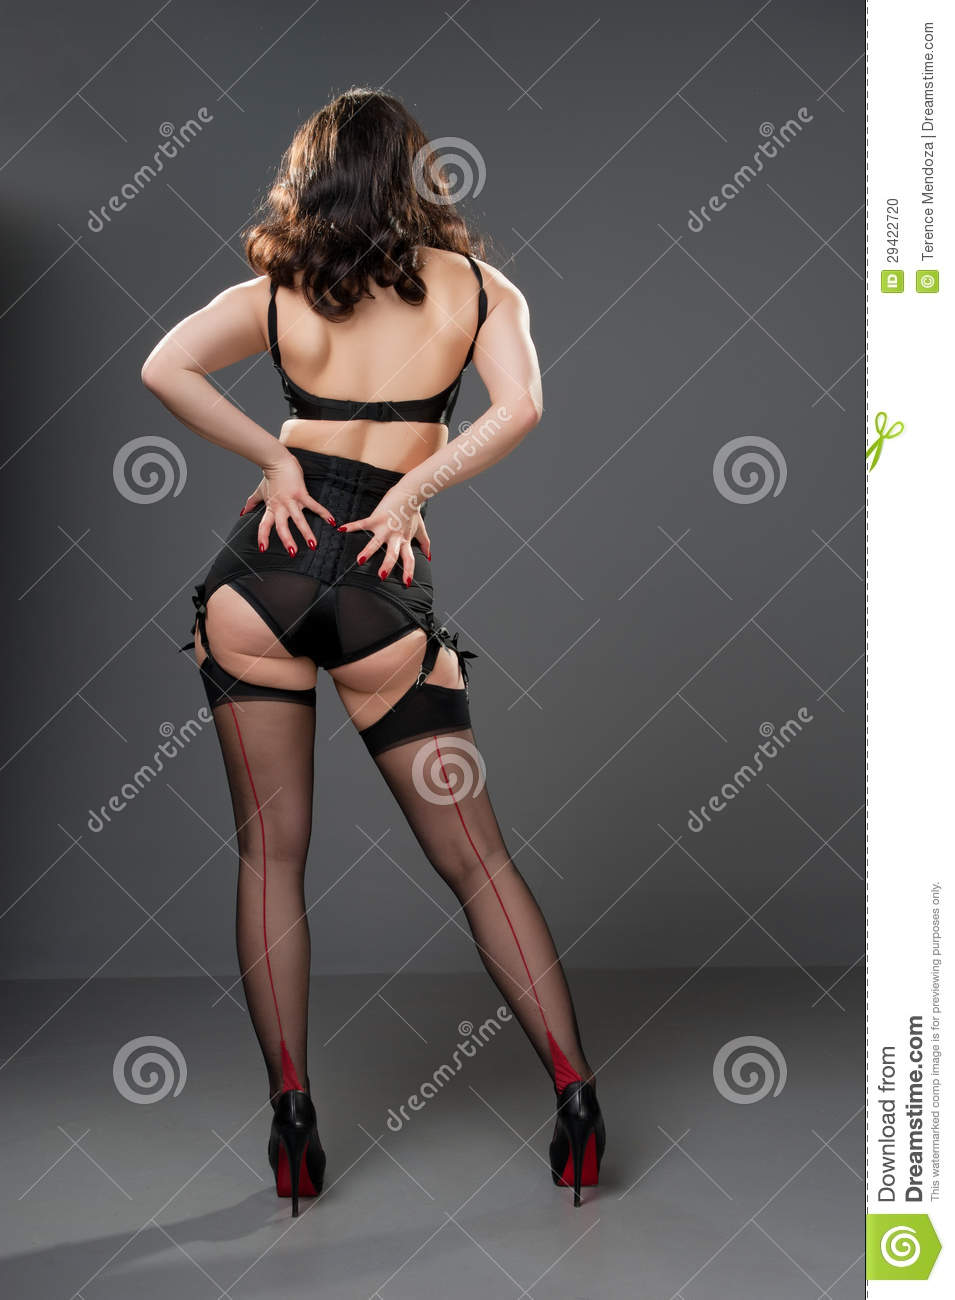 f5b6c20304b Rear View Of Lady In Retro Lingerie Stock Photo - Image of portrait ...